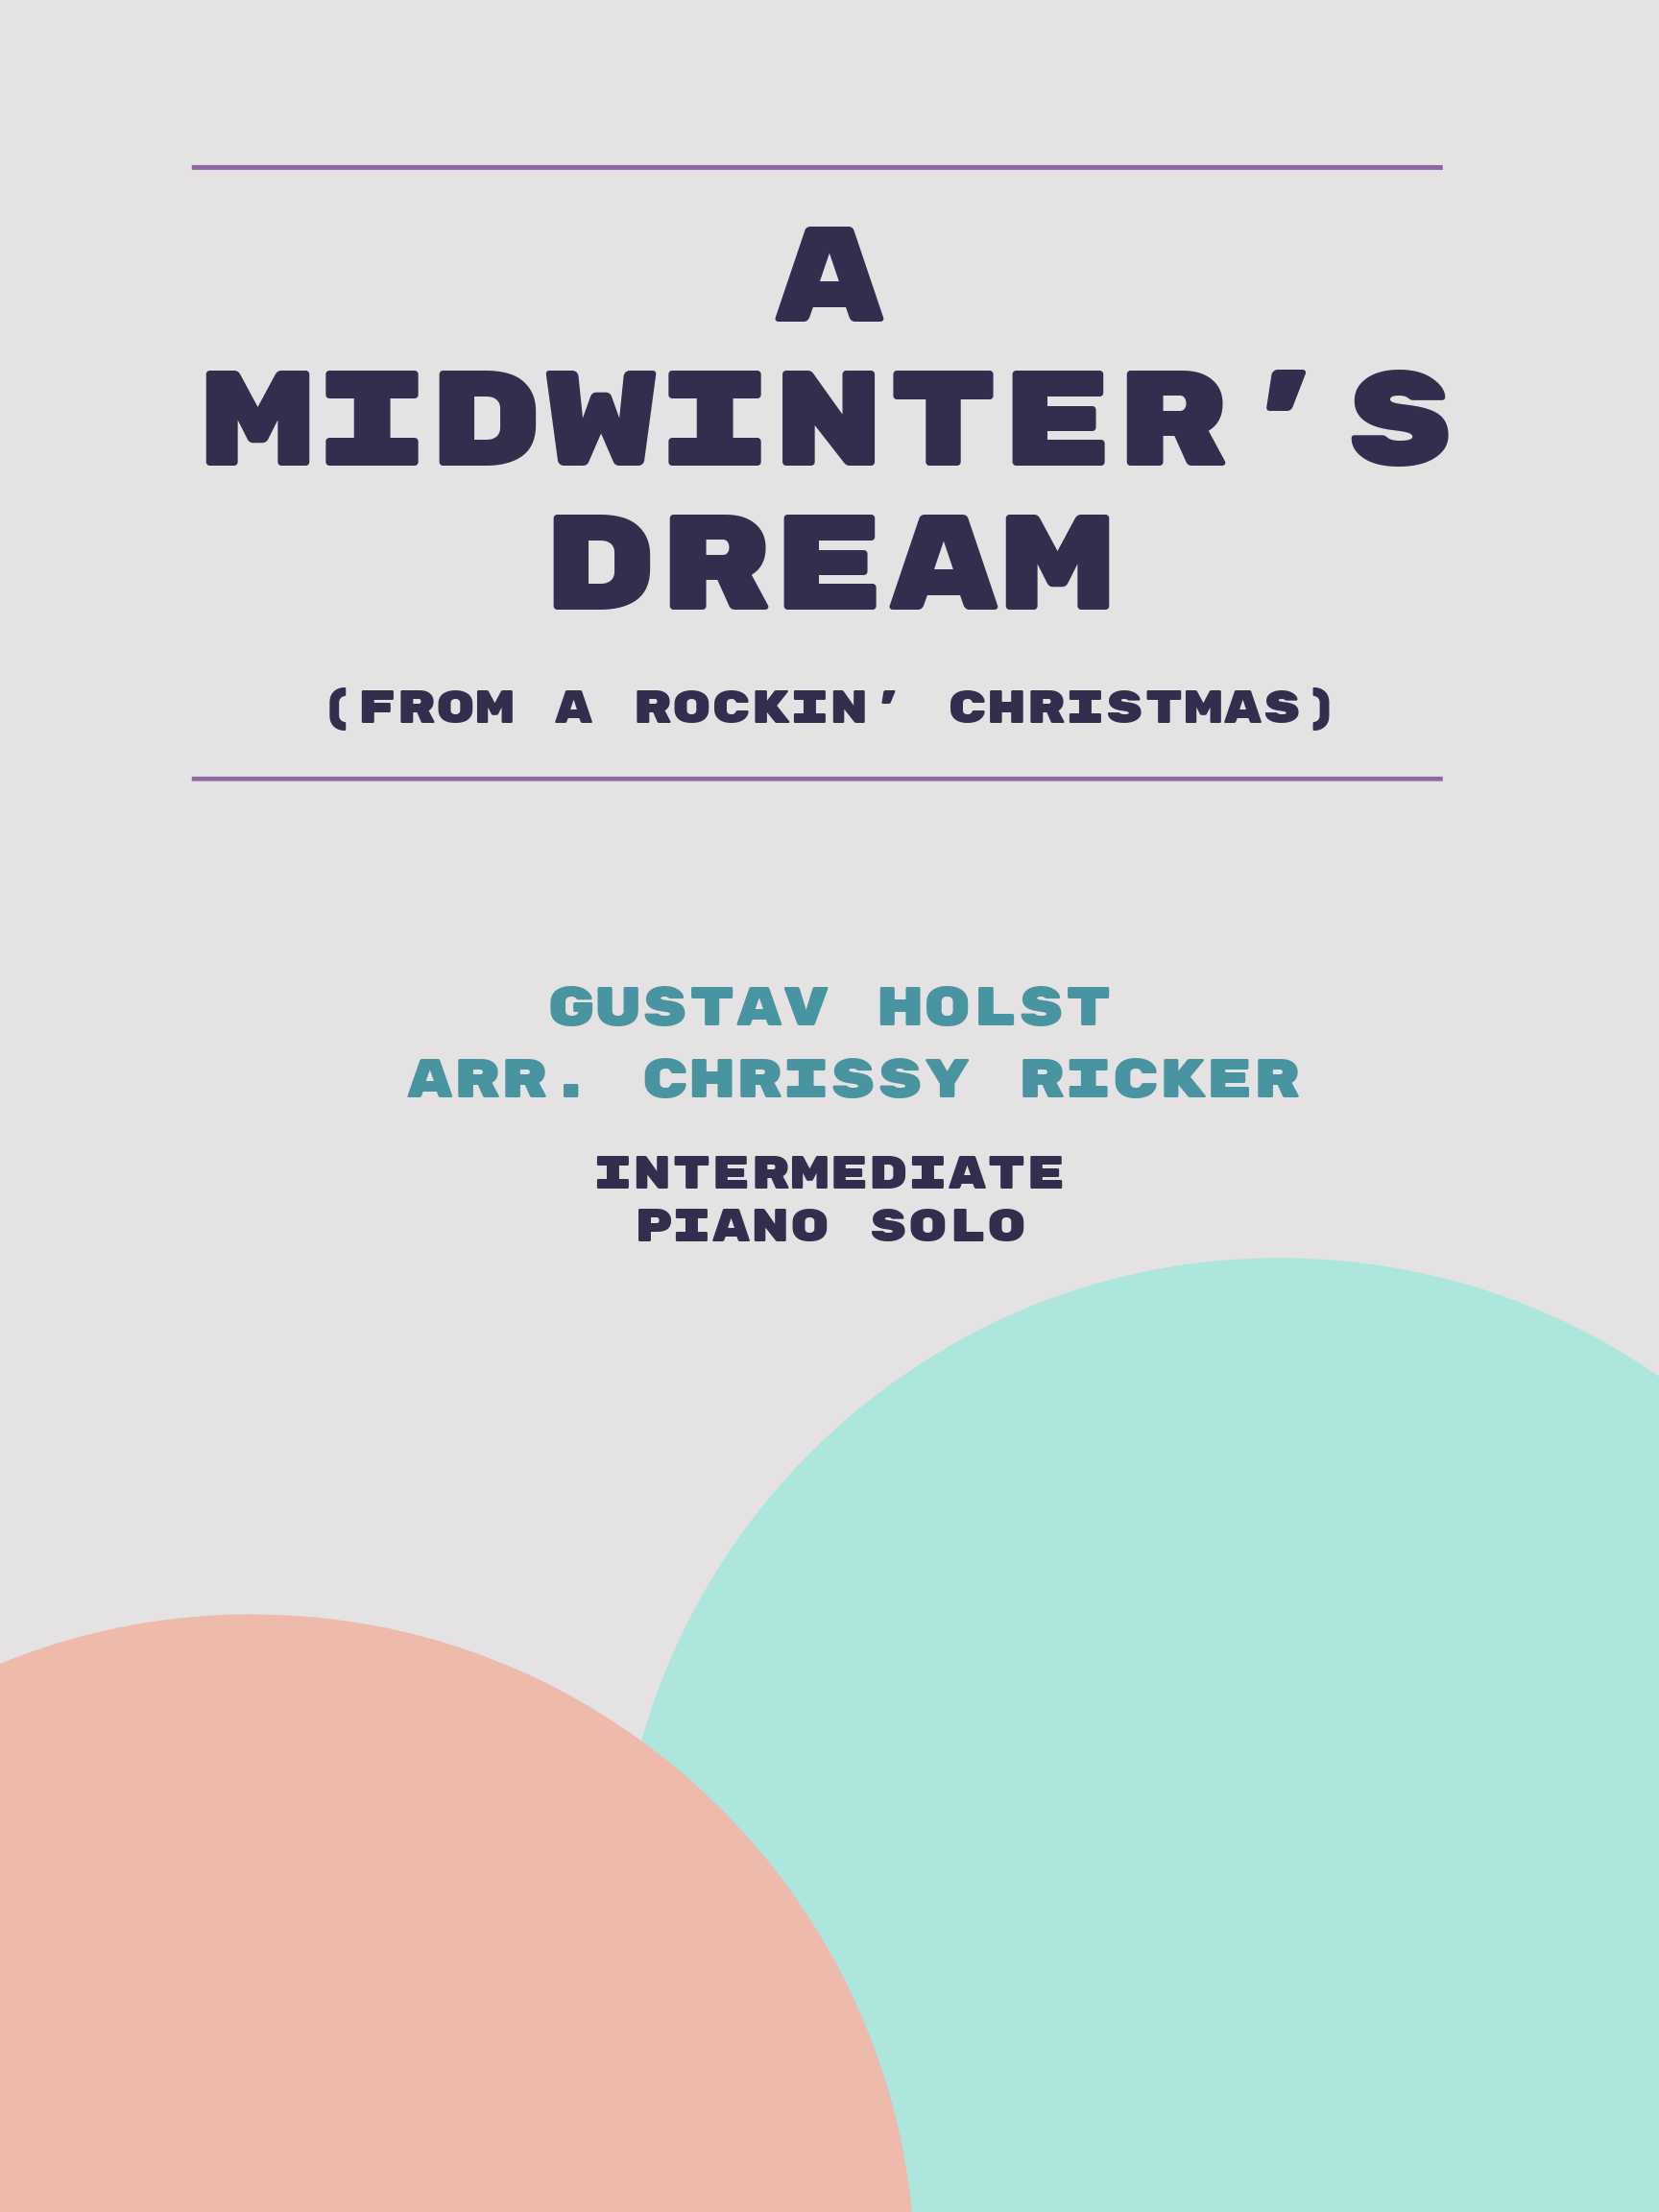 A Midwinter's Dream by Gustav Holst